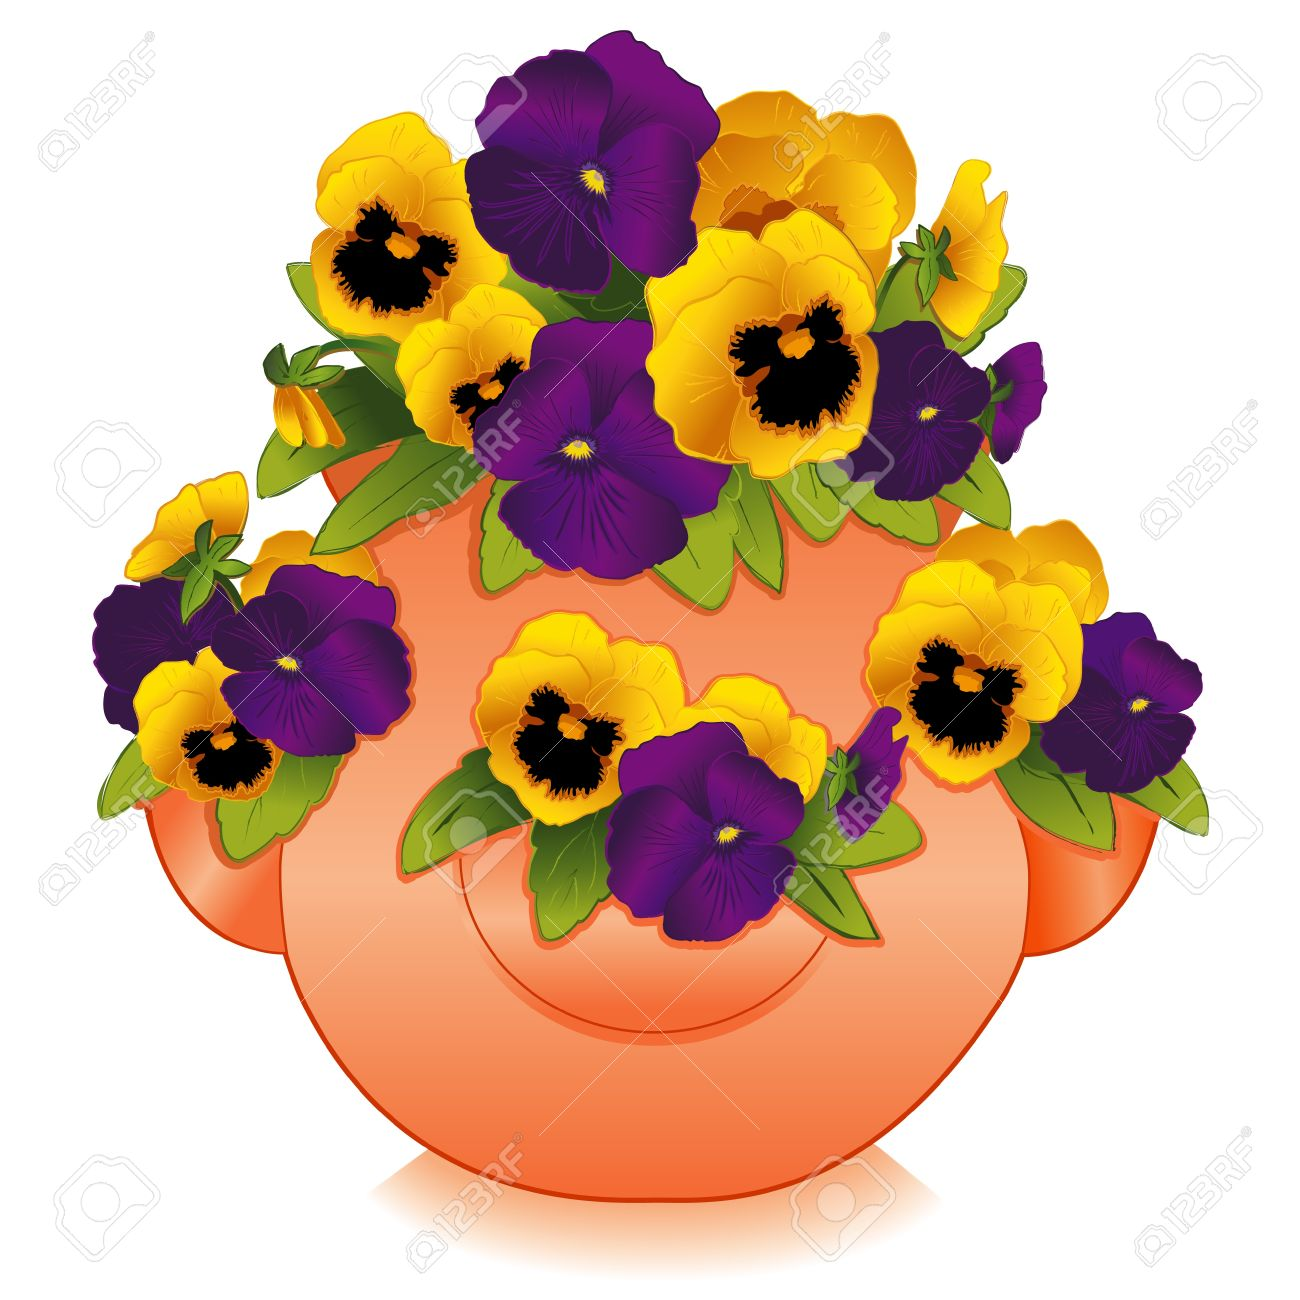 Gold and Purple Pansy Flowers in Clay Strawberry Jar Planter Stock Vector - 12392313